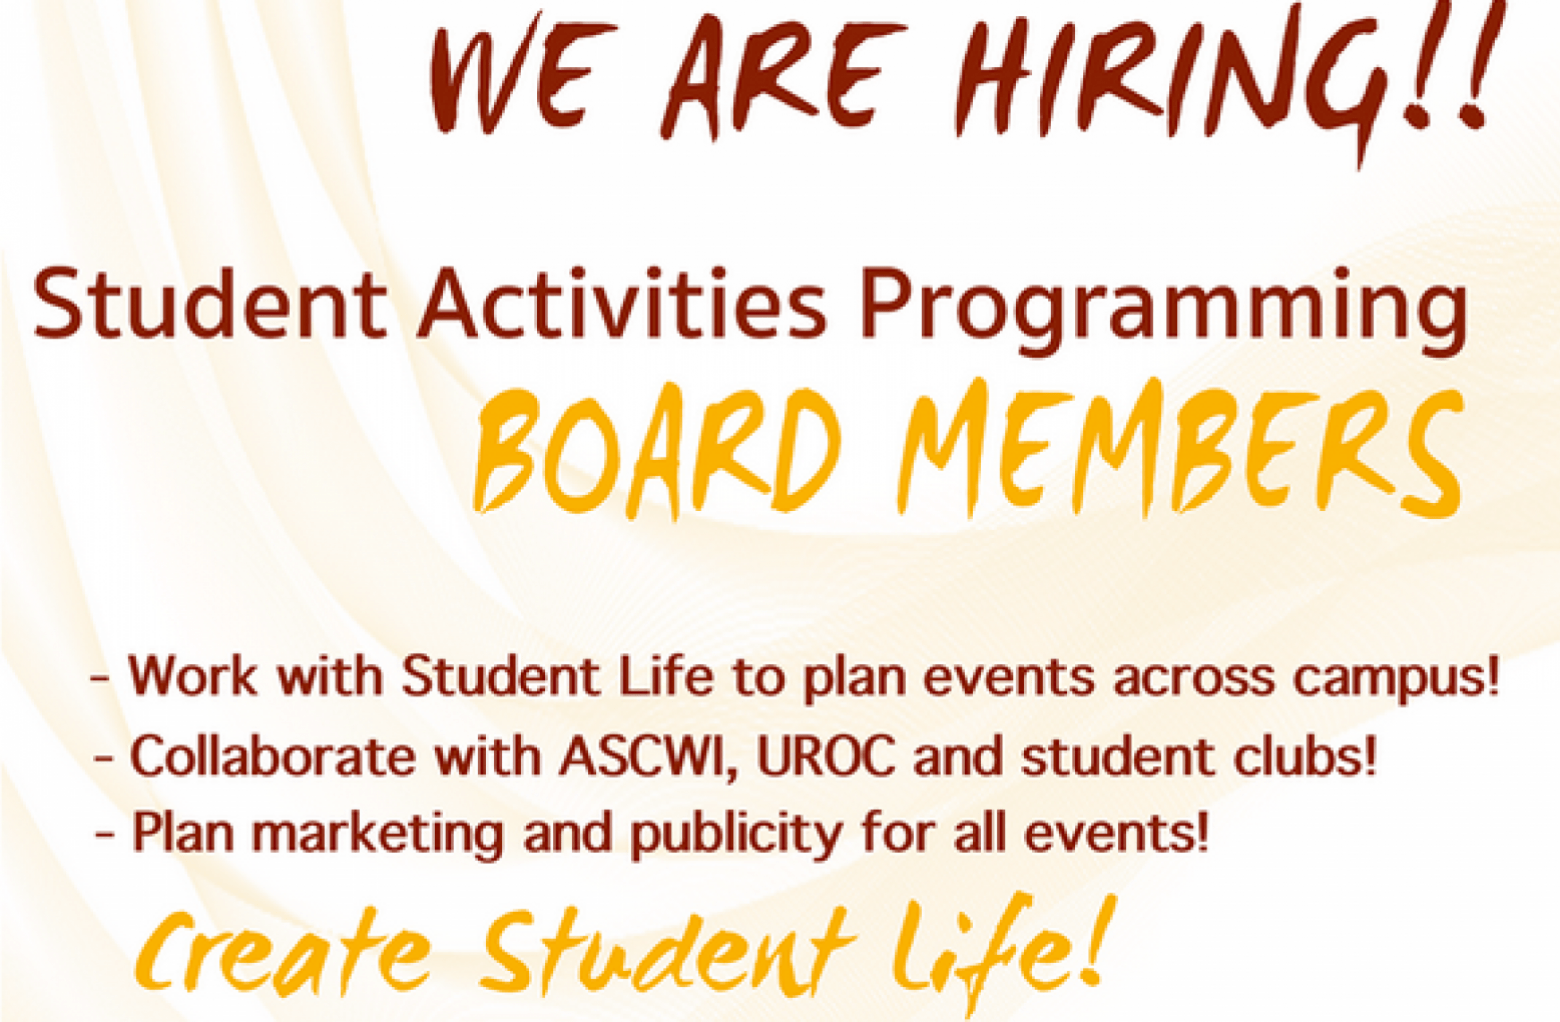 We Are Hiring - Student Activities Programming Board Members